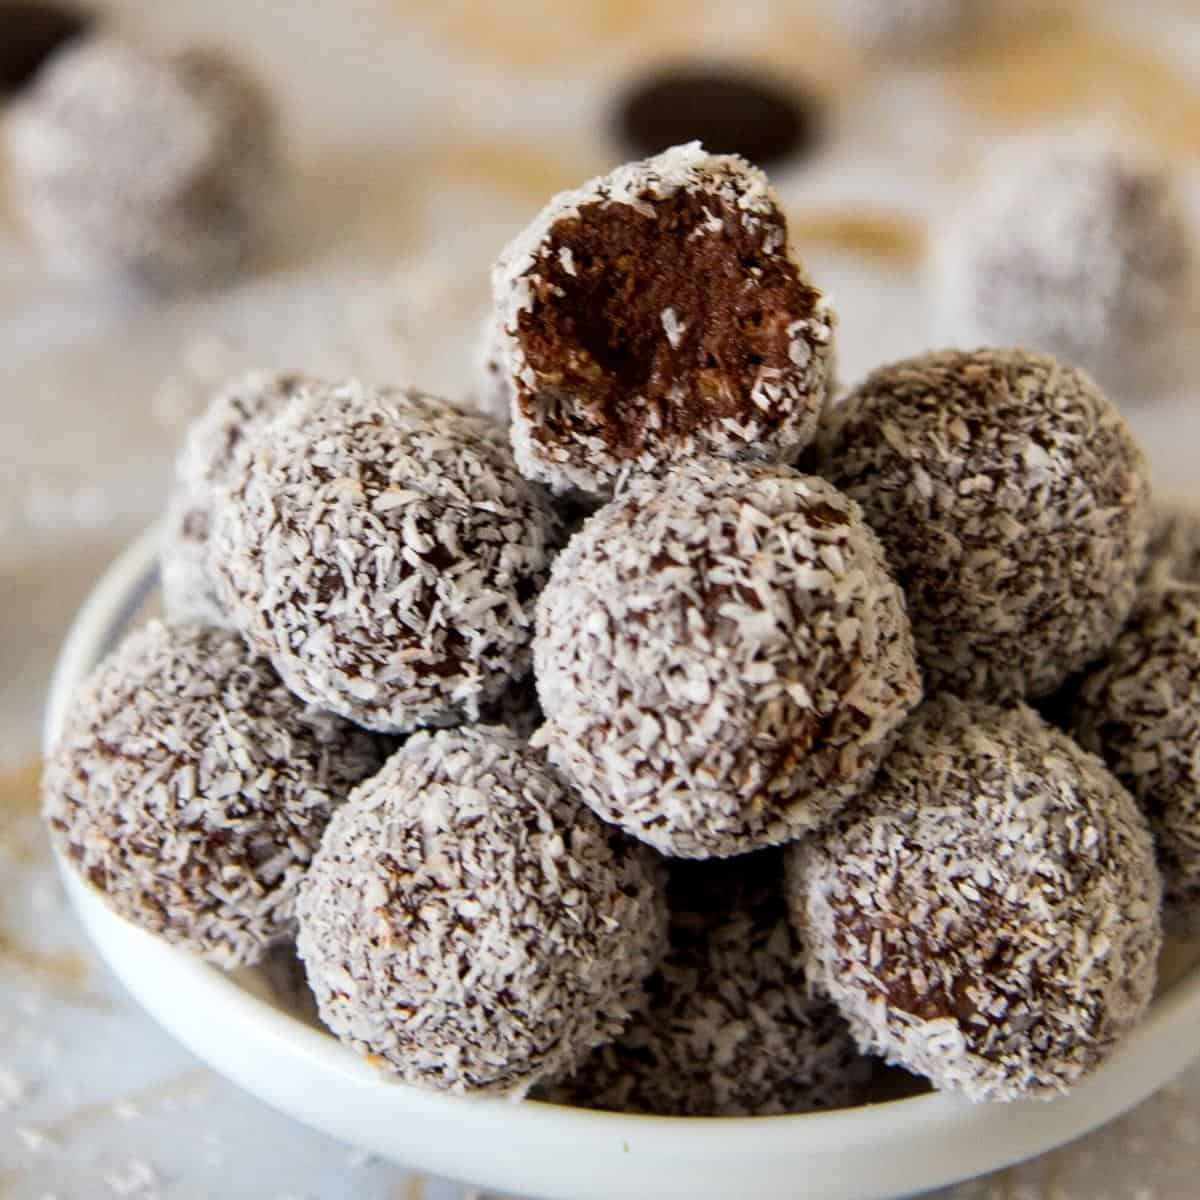 A stack of coconut chocolate truffles